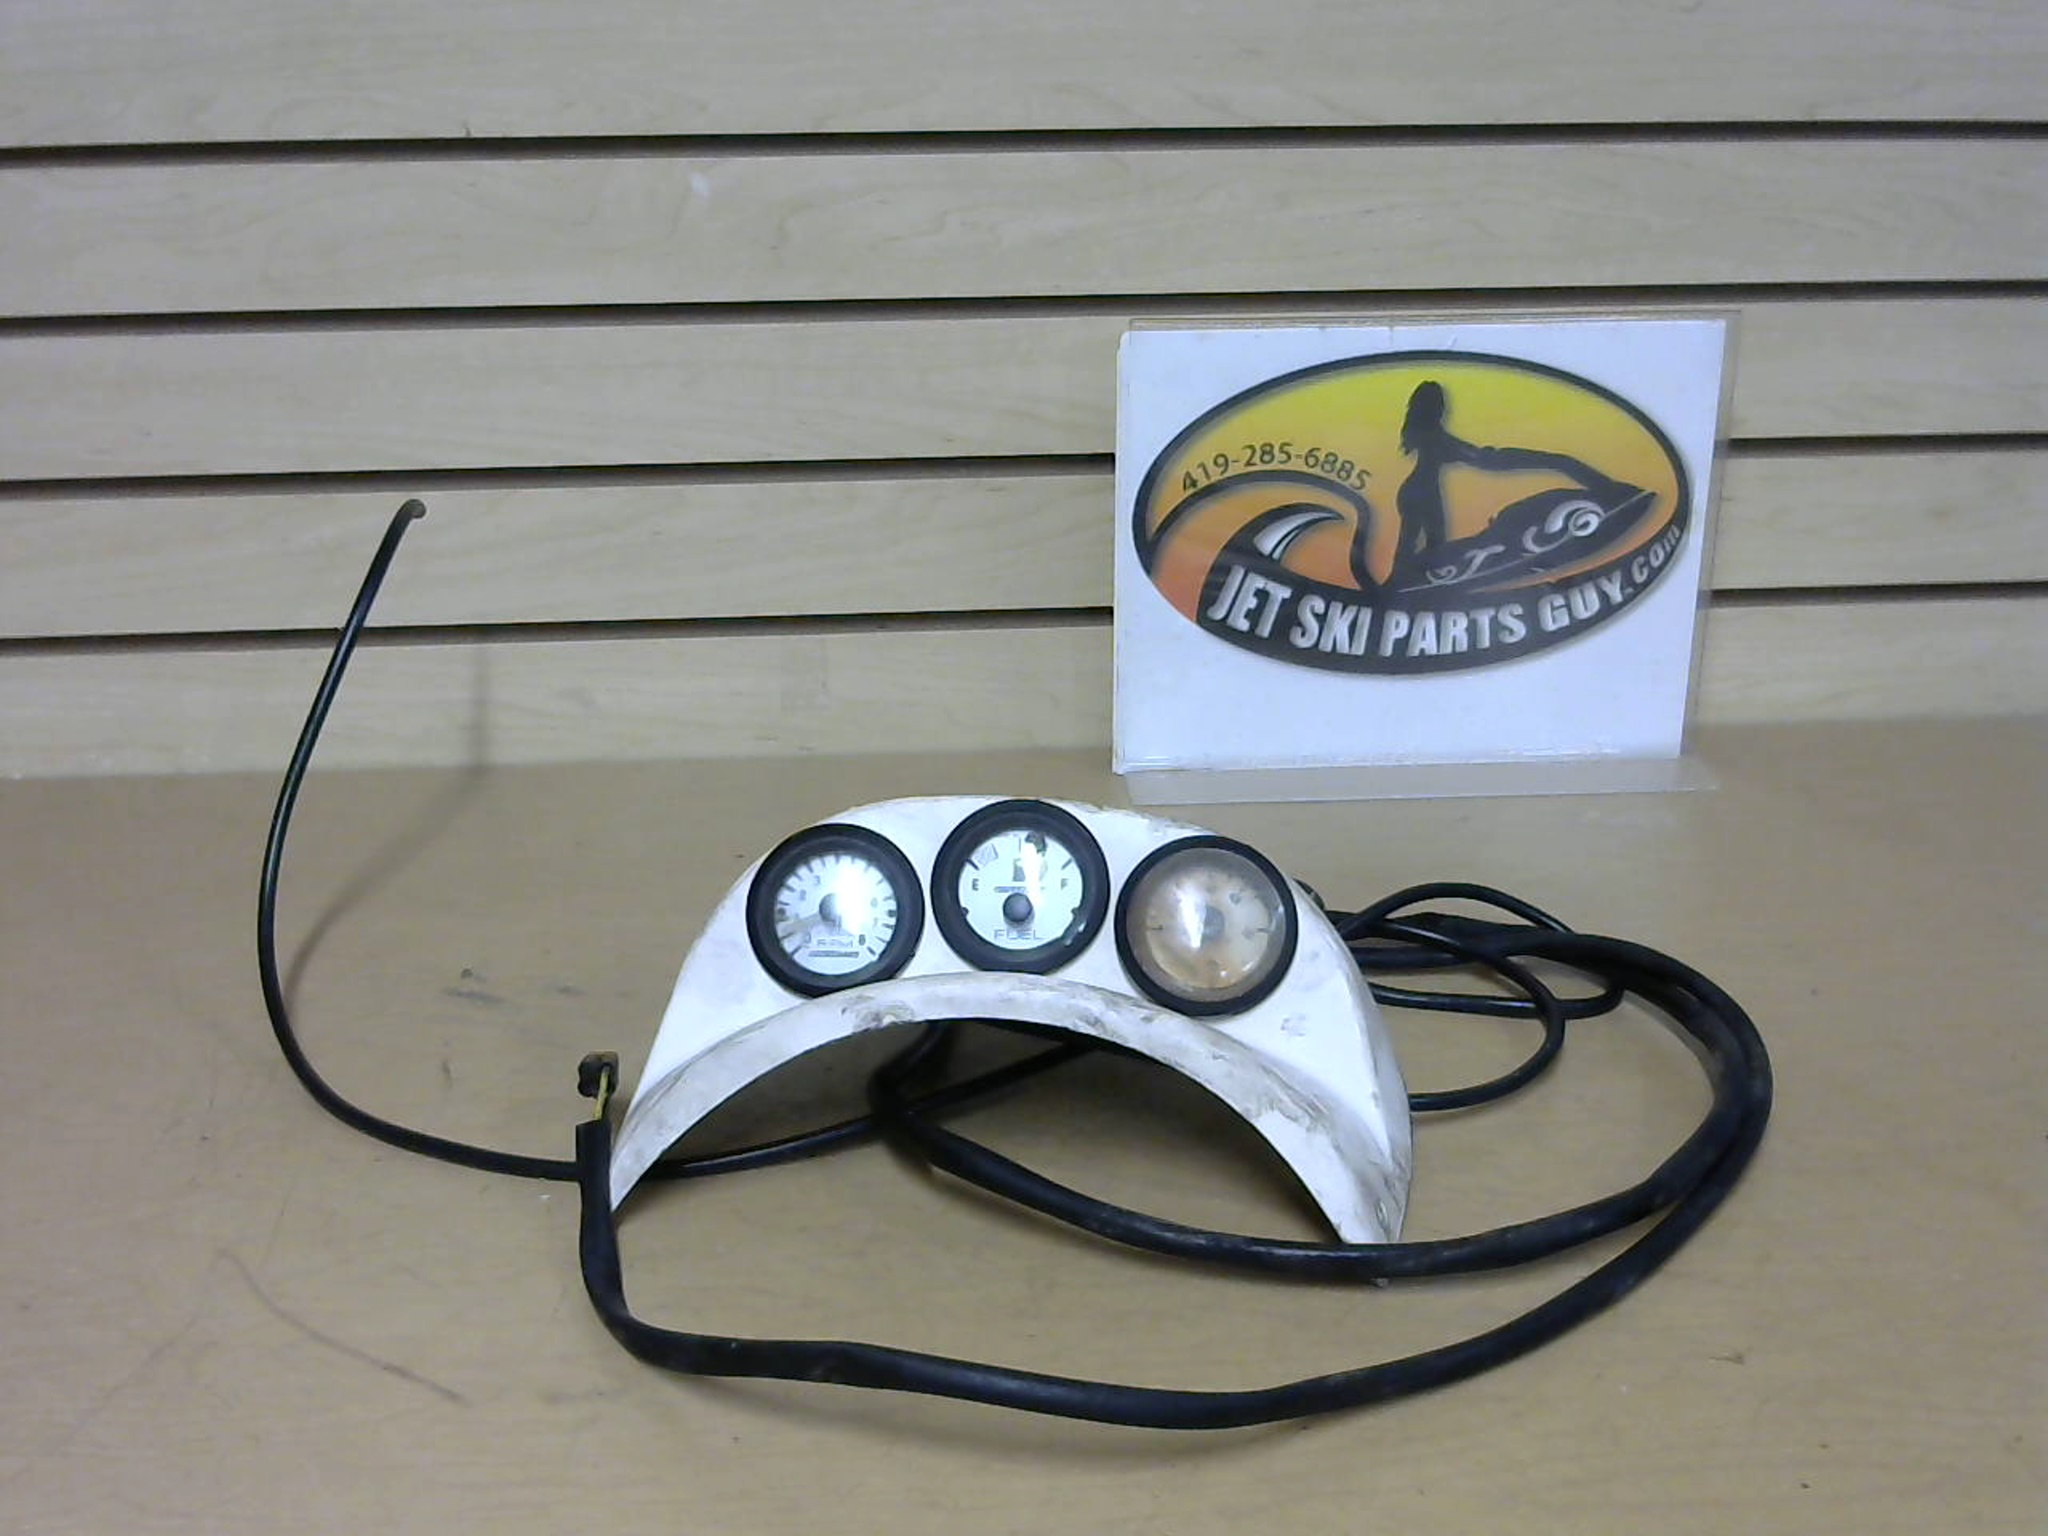 1997 Tigershark Monte Carlo 900 Instrument Panel MPH and Fuel 0673-919 0620-188 0620-172